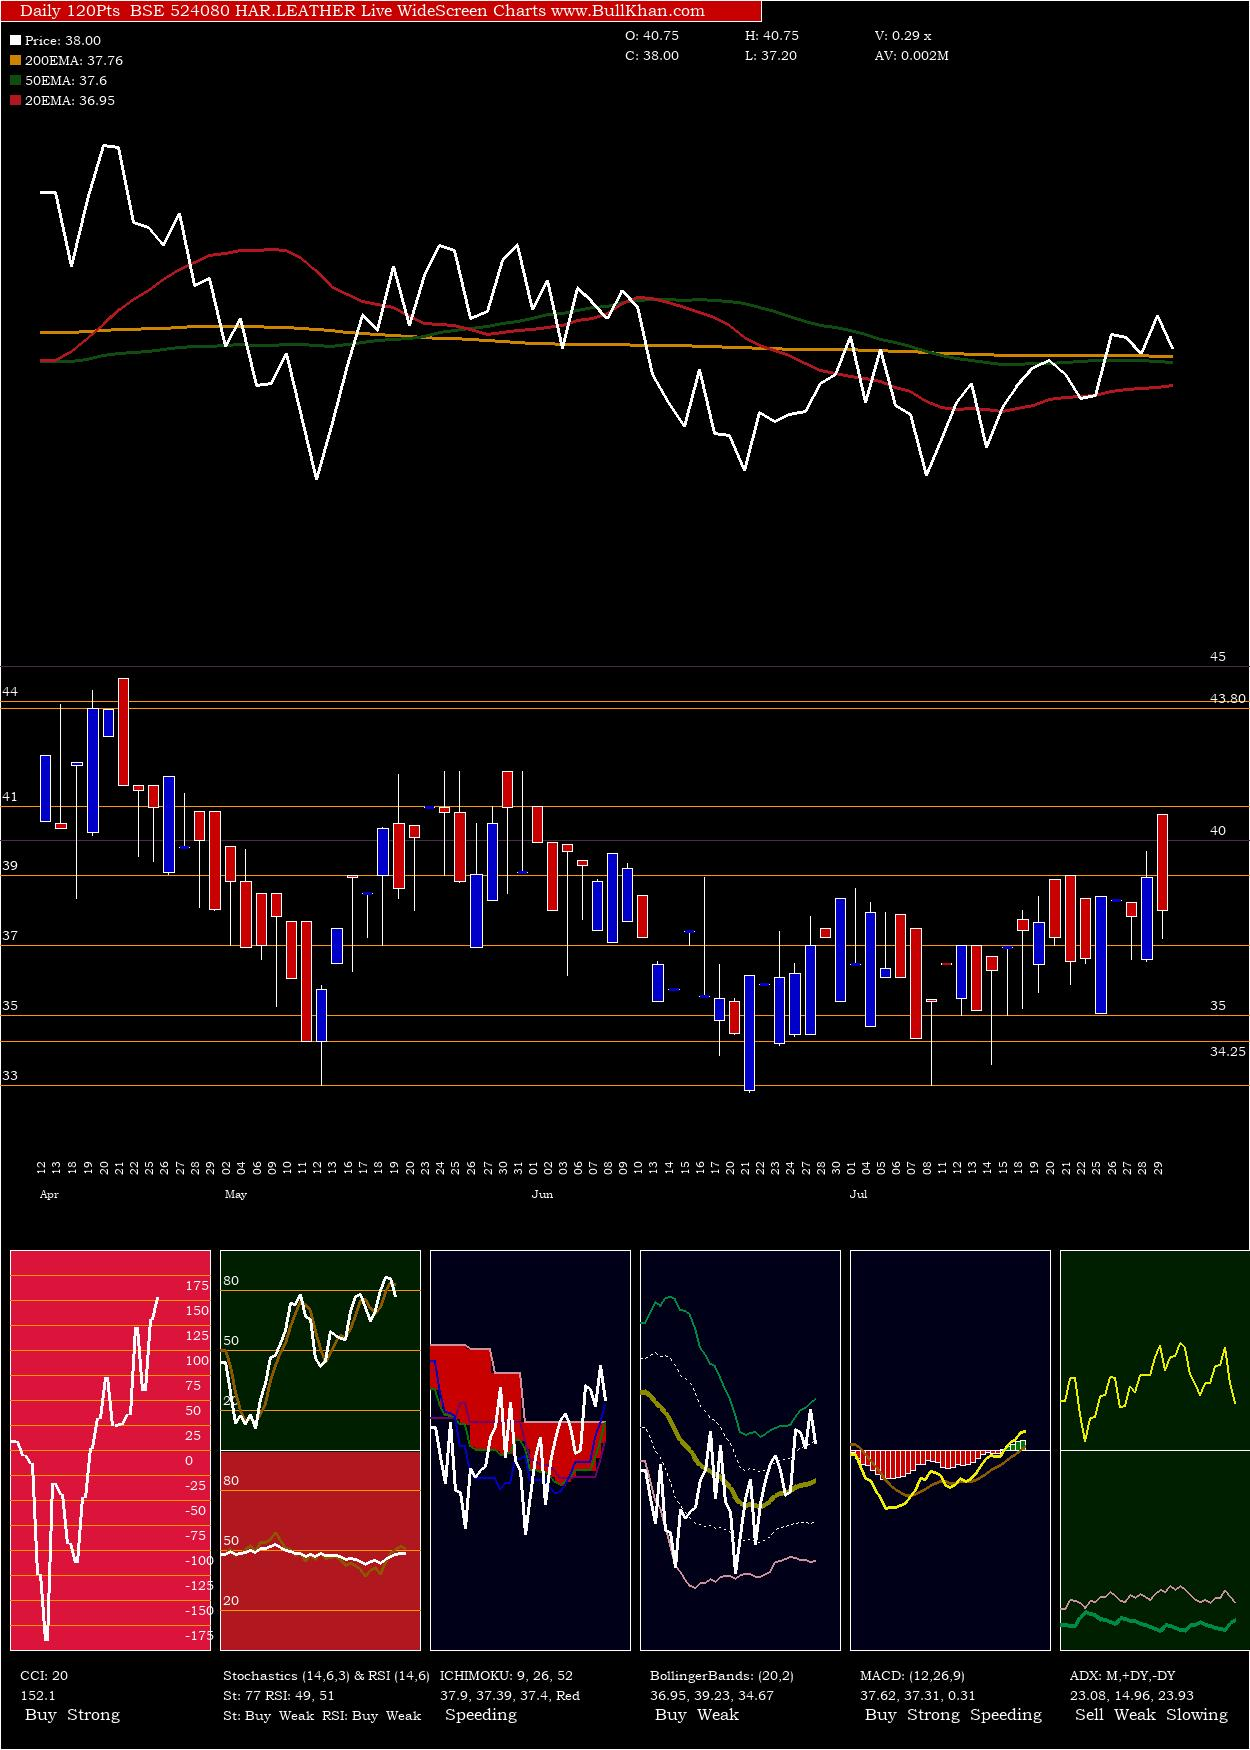 Har Leather charts and indicators